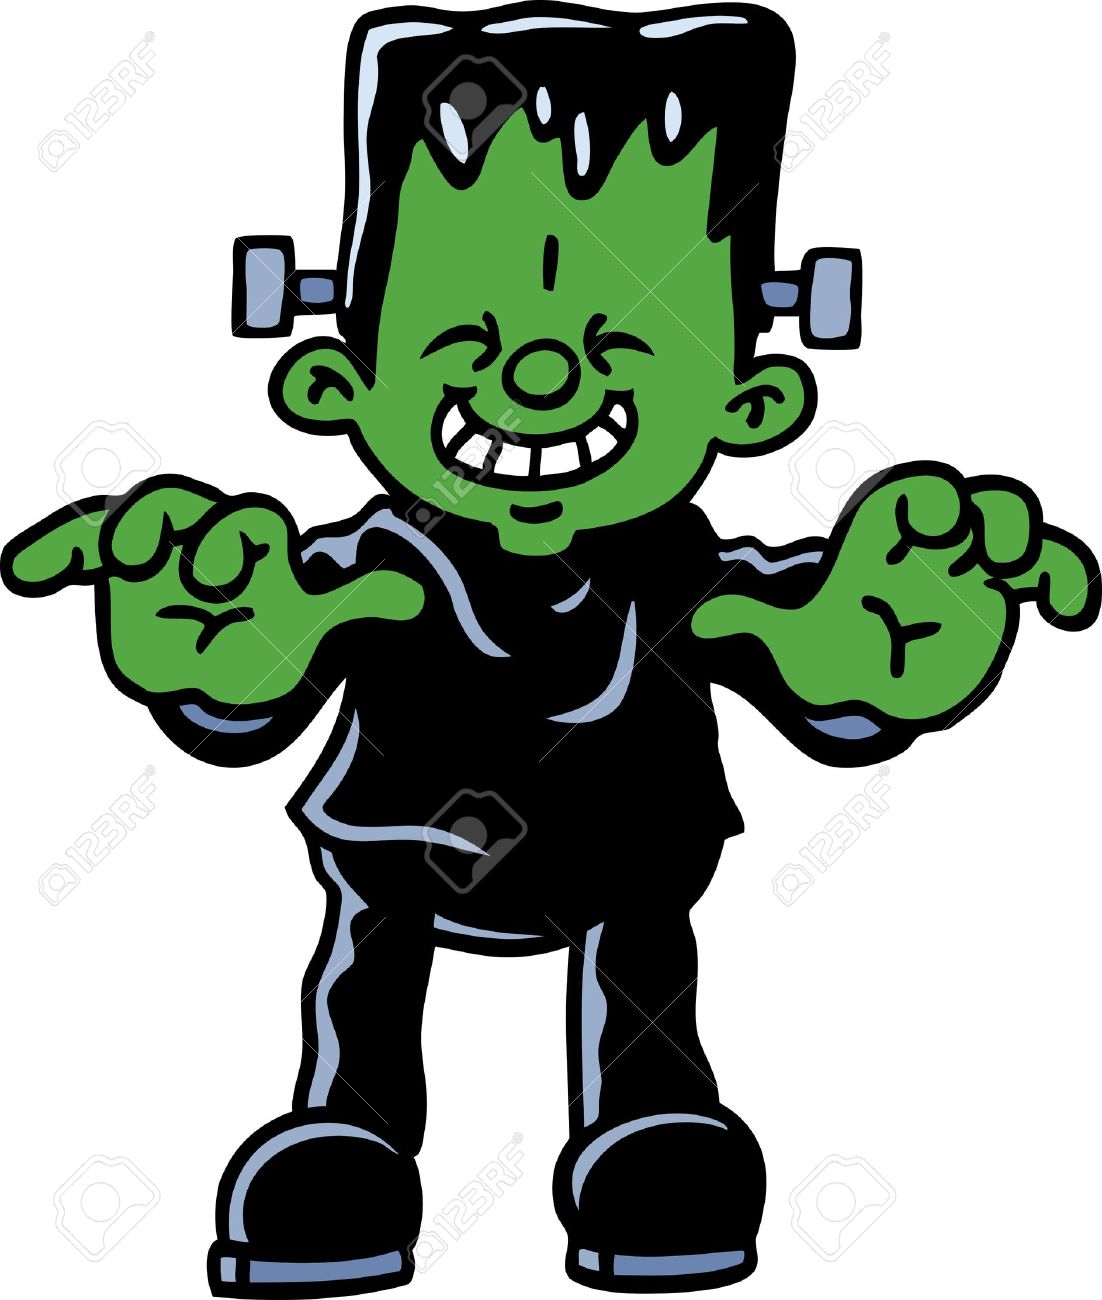 Frankenstein clipart cartoon For frankenstein Trick Google Unicef